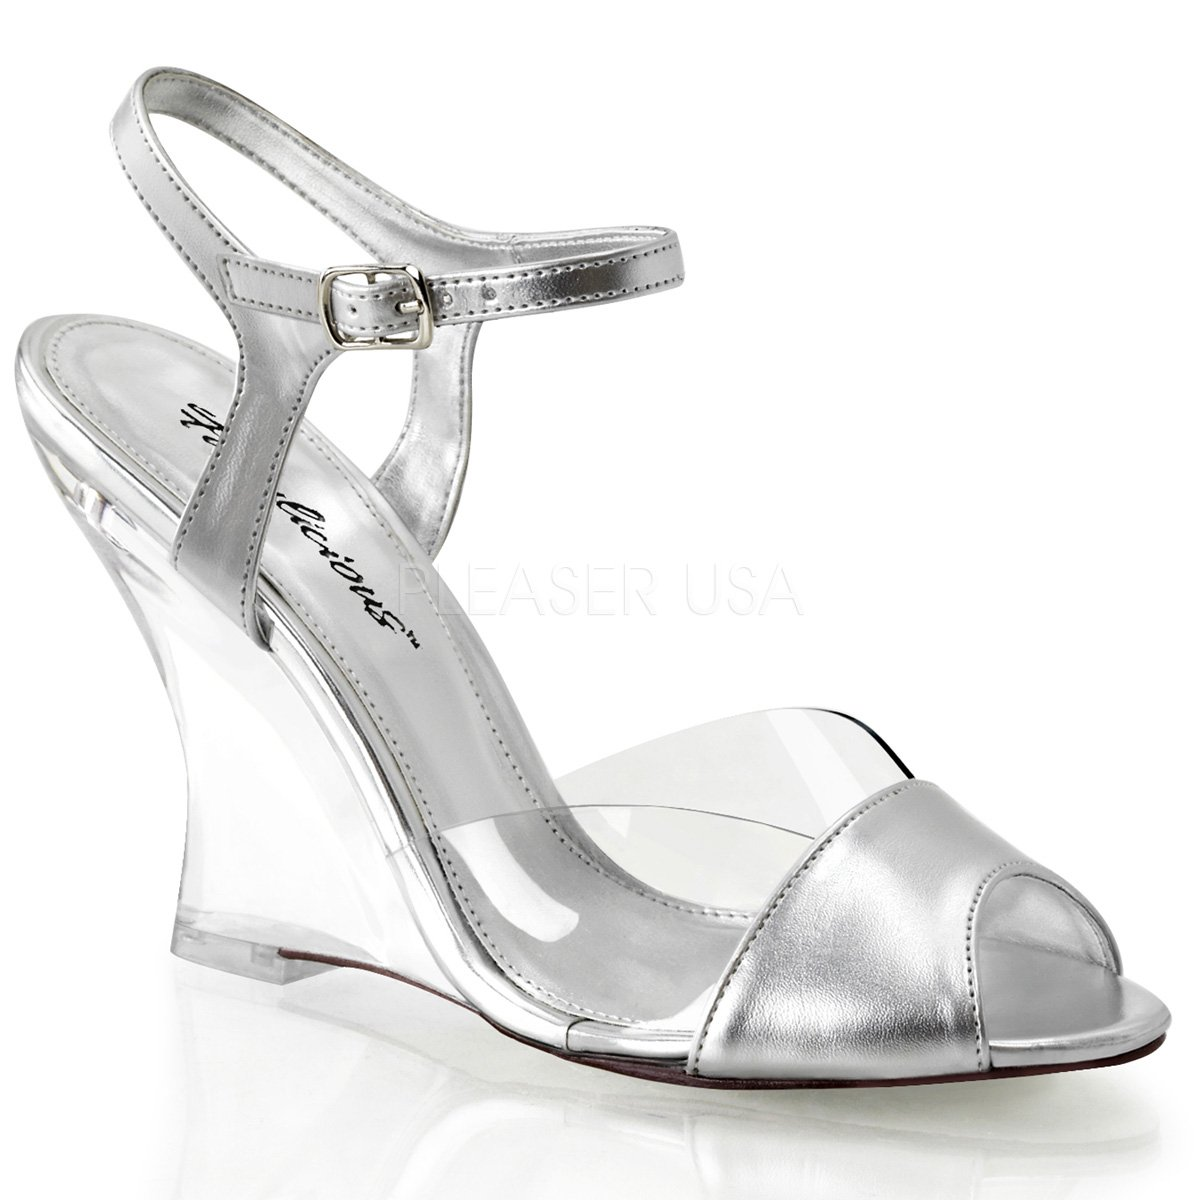 Fabulicious Women's Lovely 442 Ankle Strap Sandals B00JEY1PCK 11 B(M) US|Clear Silver Metallic Pu / Clear